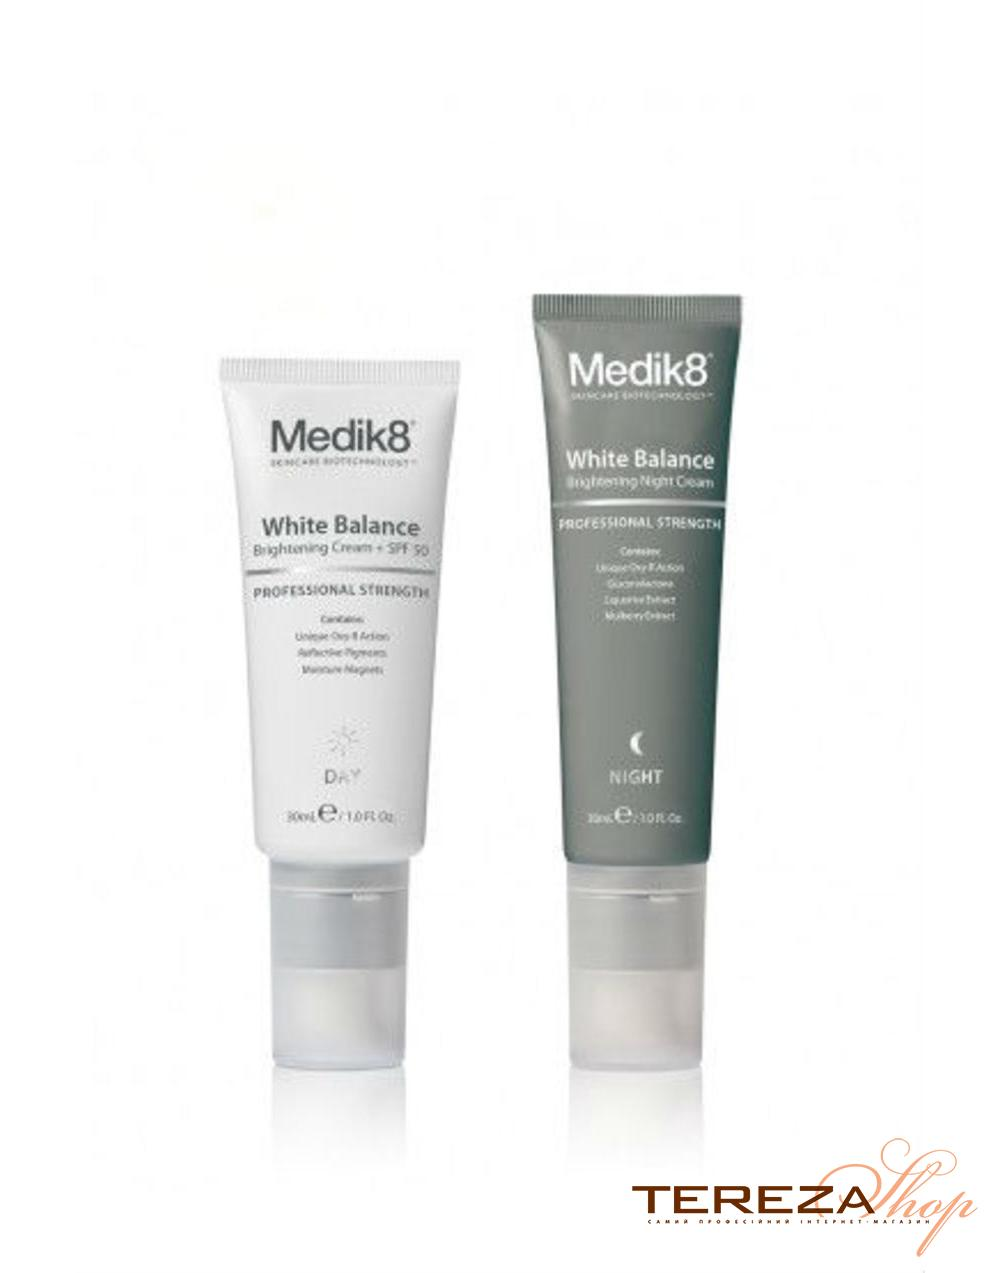 WHITE BALANCE DUO MEDIK8 | Tereza Shop